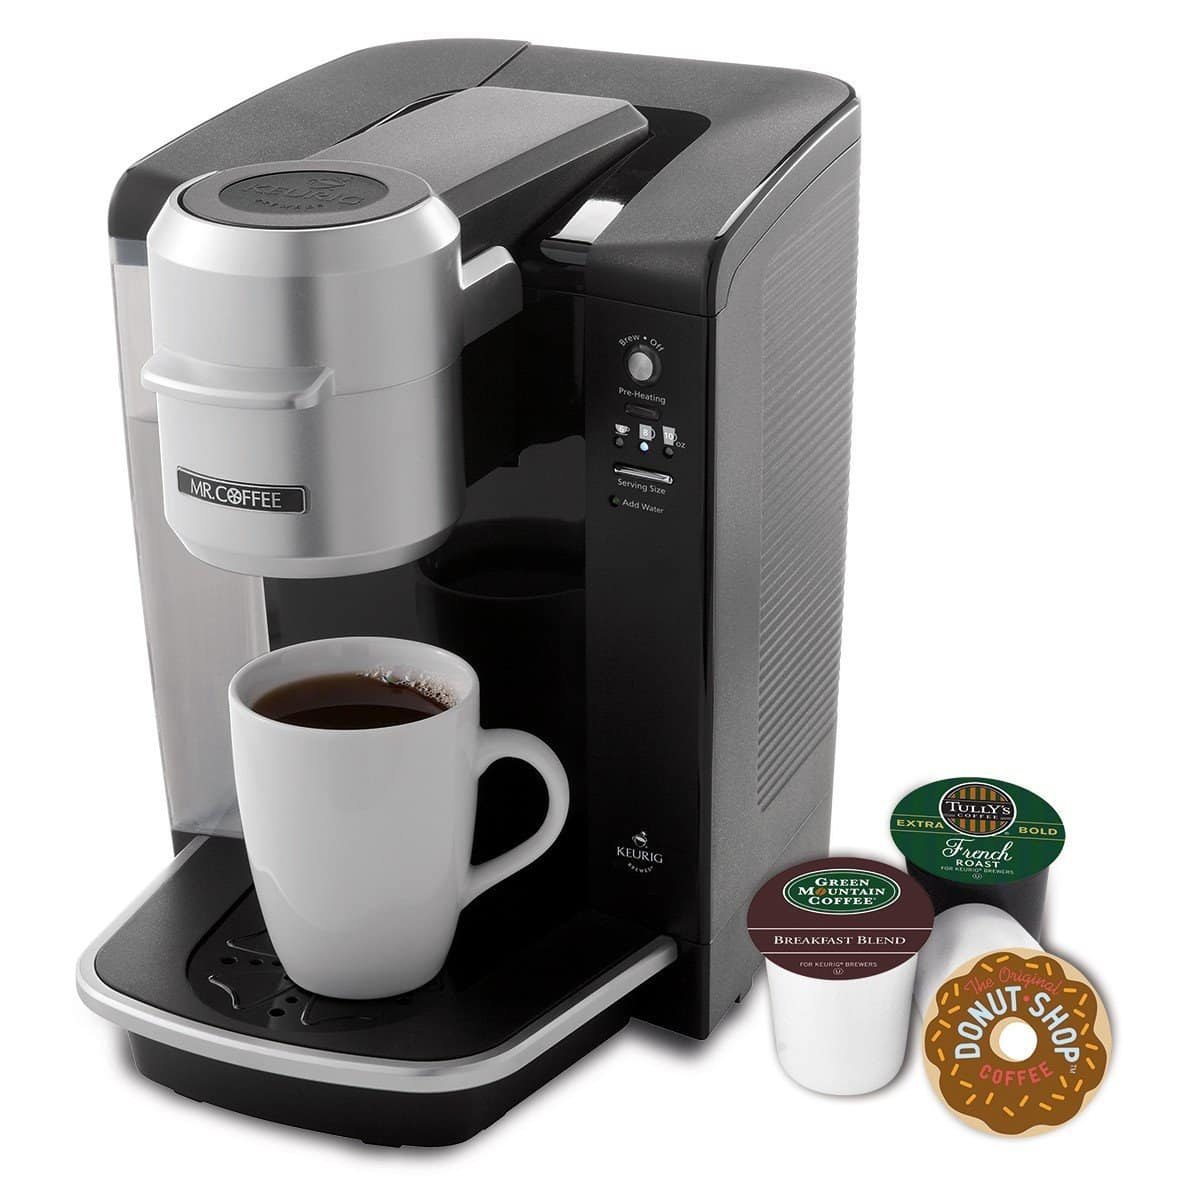 Mr. Coffee BVMC-KG6-001 Single Serve Coffee Brewer